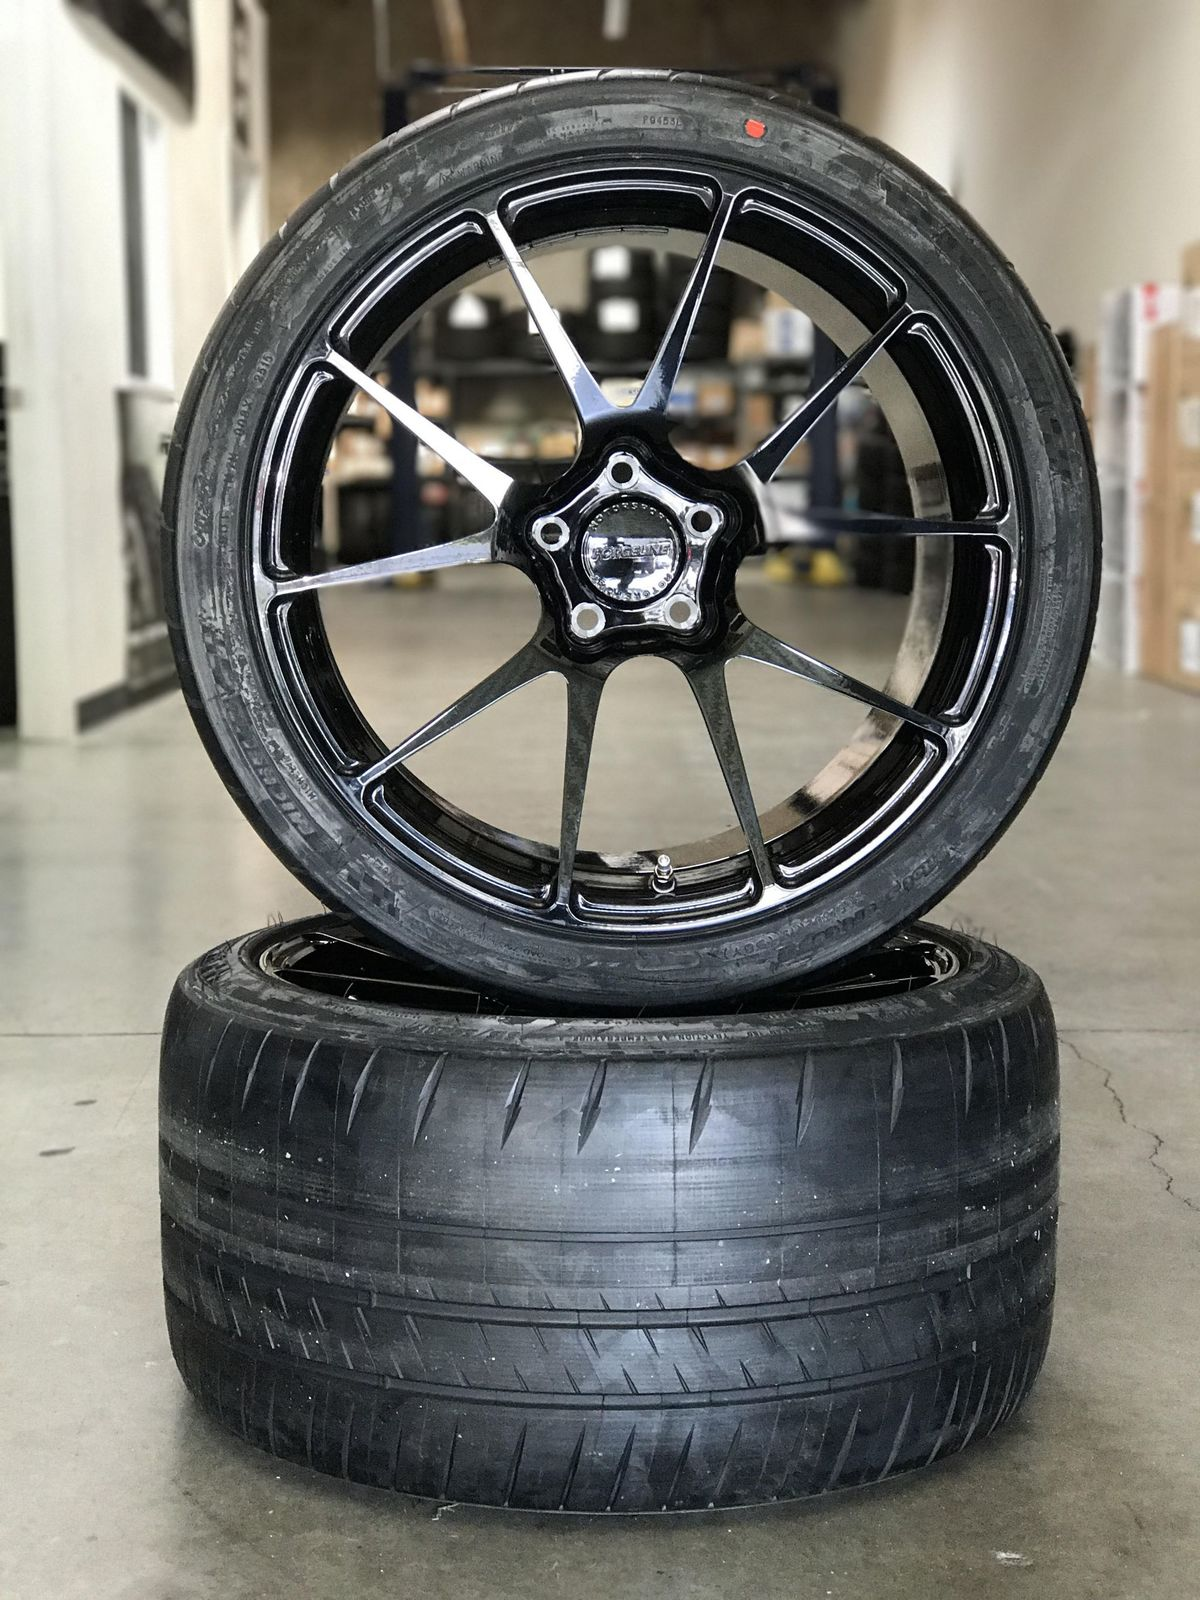 forgeline-ga1r-open-lug-gloss-black-concave-wheels-michelin-sport-cup-2-track-wheels.jpg